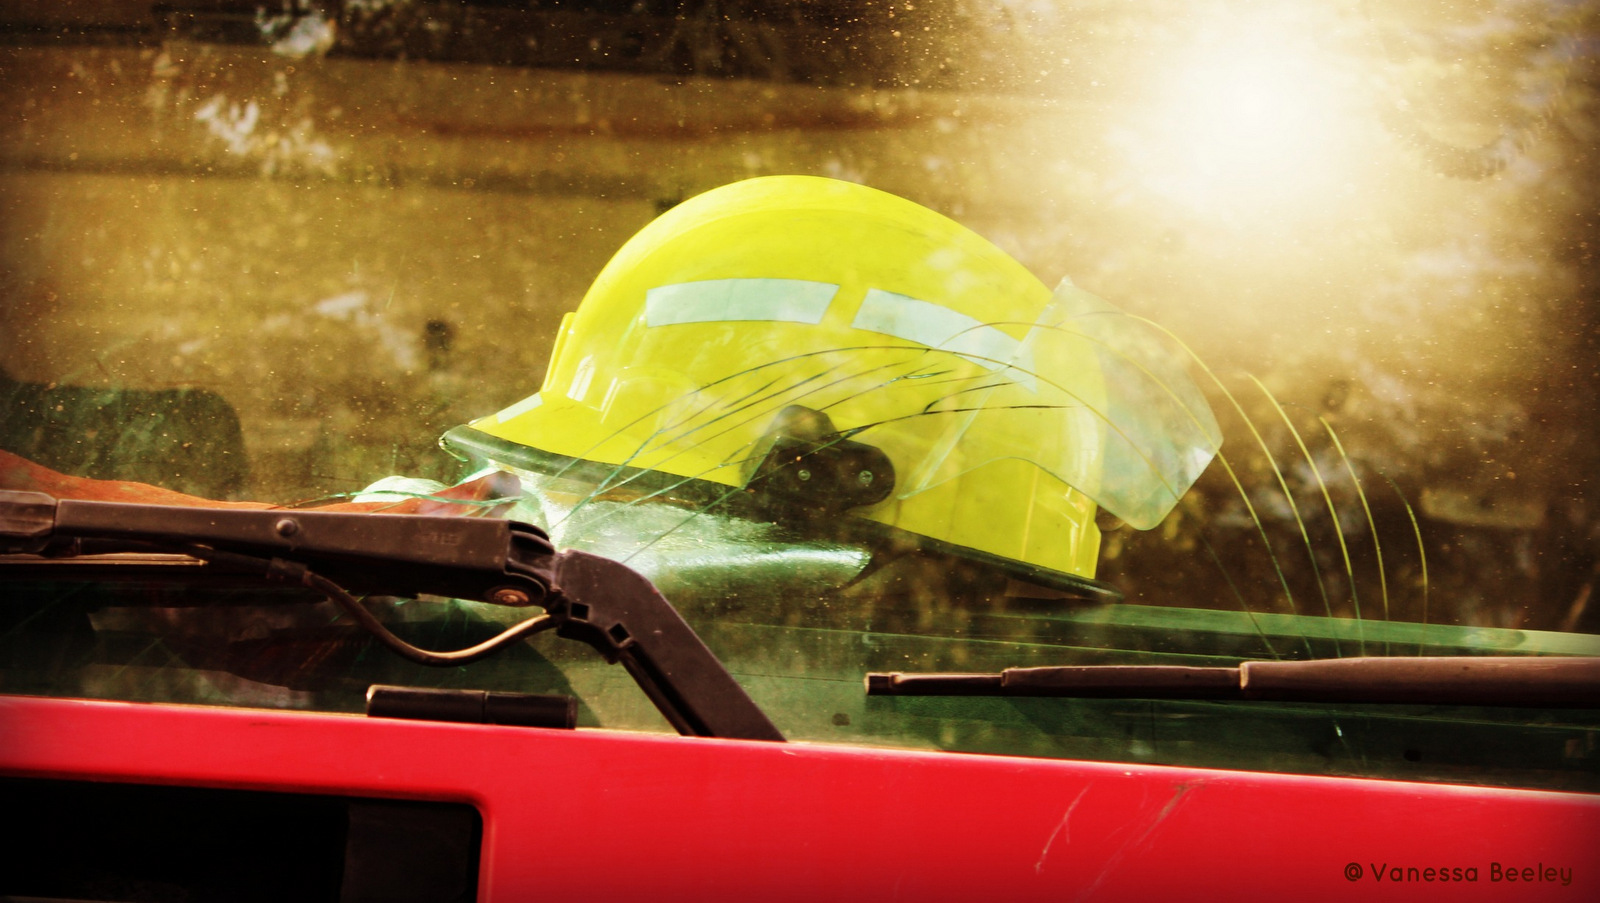 A helmet used by the real Syria Civil Defense is perched on the dashboard, ready for action.  (Photo by Vanessa Beeley)